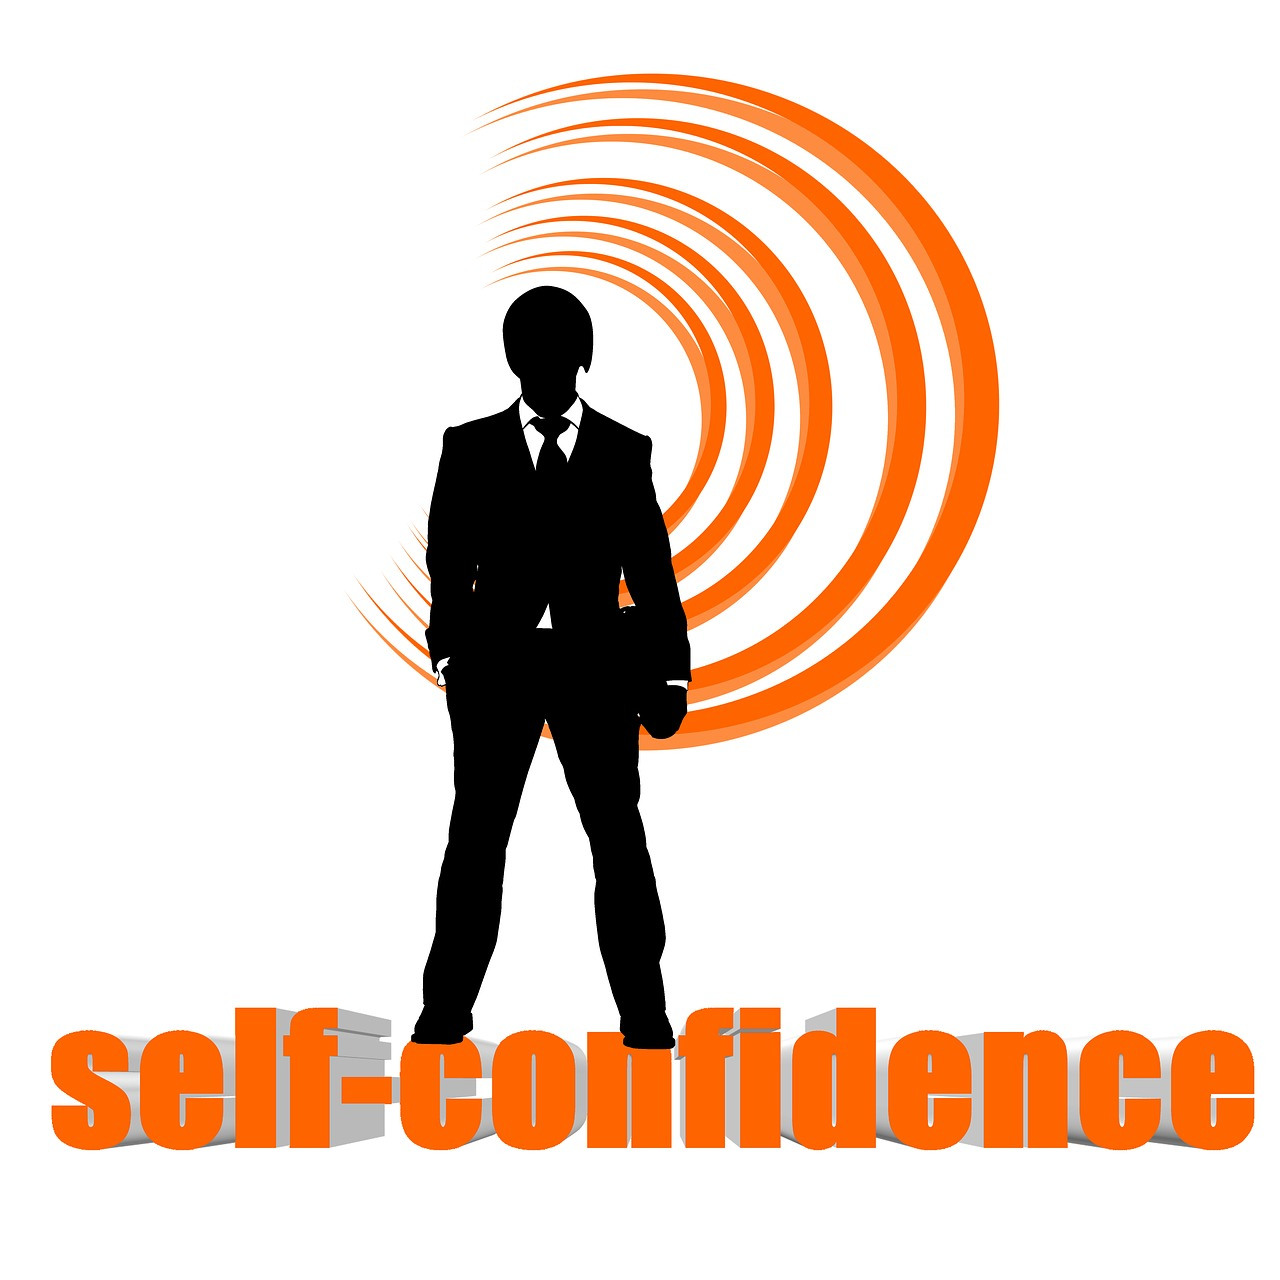 Difference Between Arrogance and Confidence